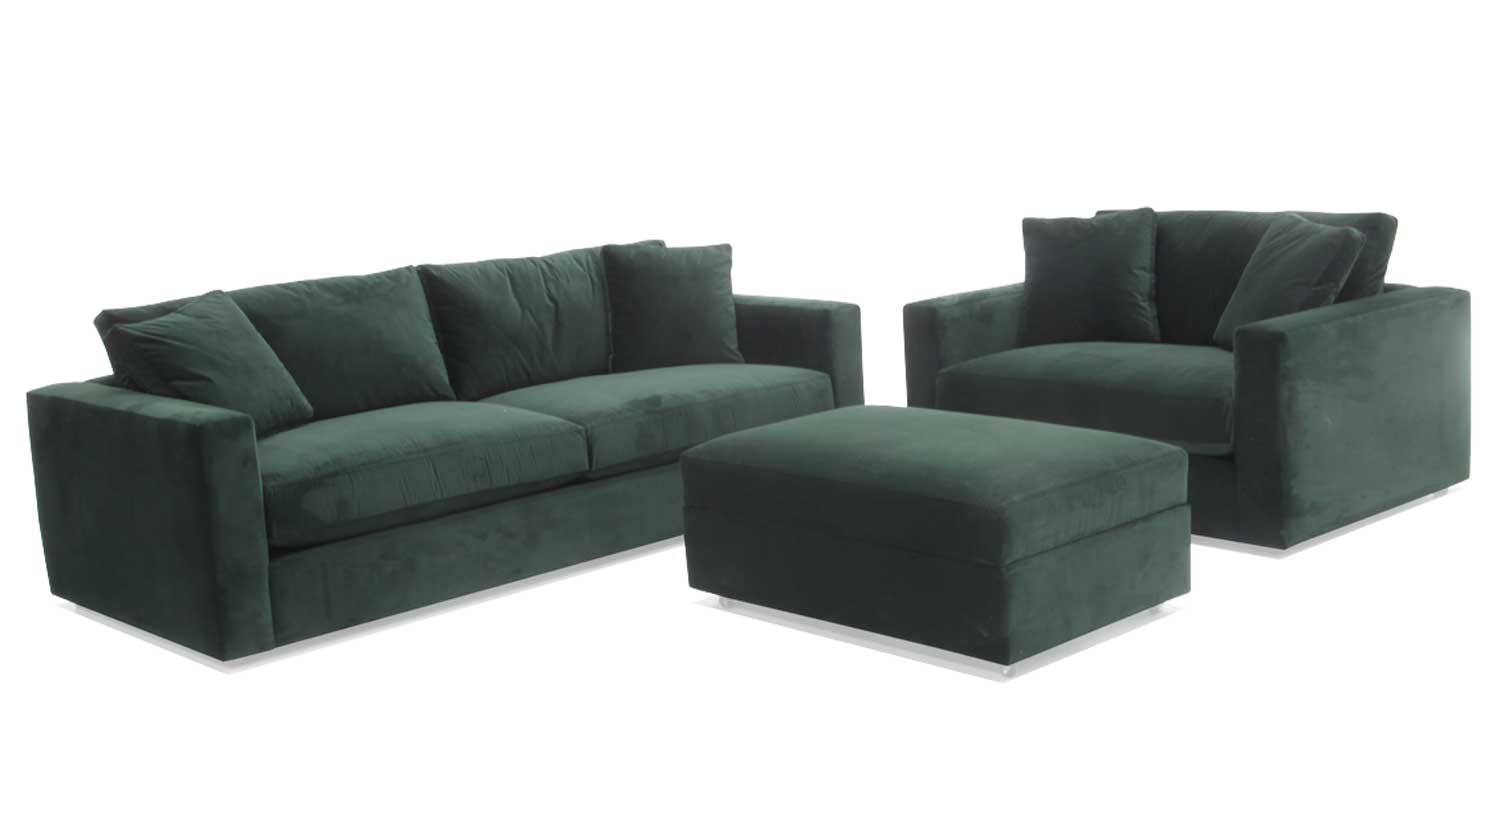 Circle Furniture - Putnam Sofa | Chairs | Large Chair ...